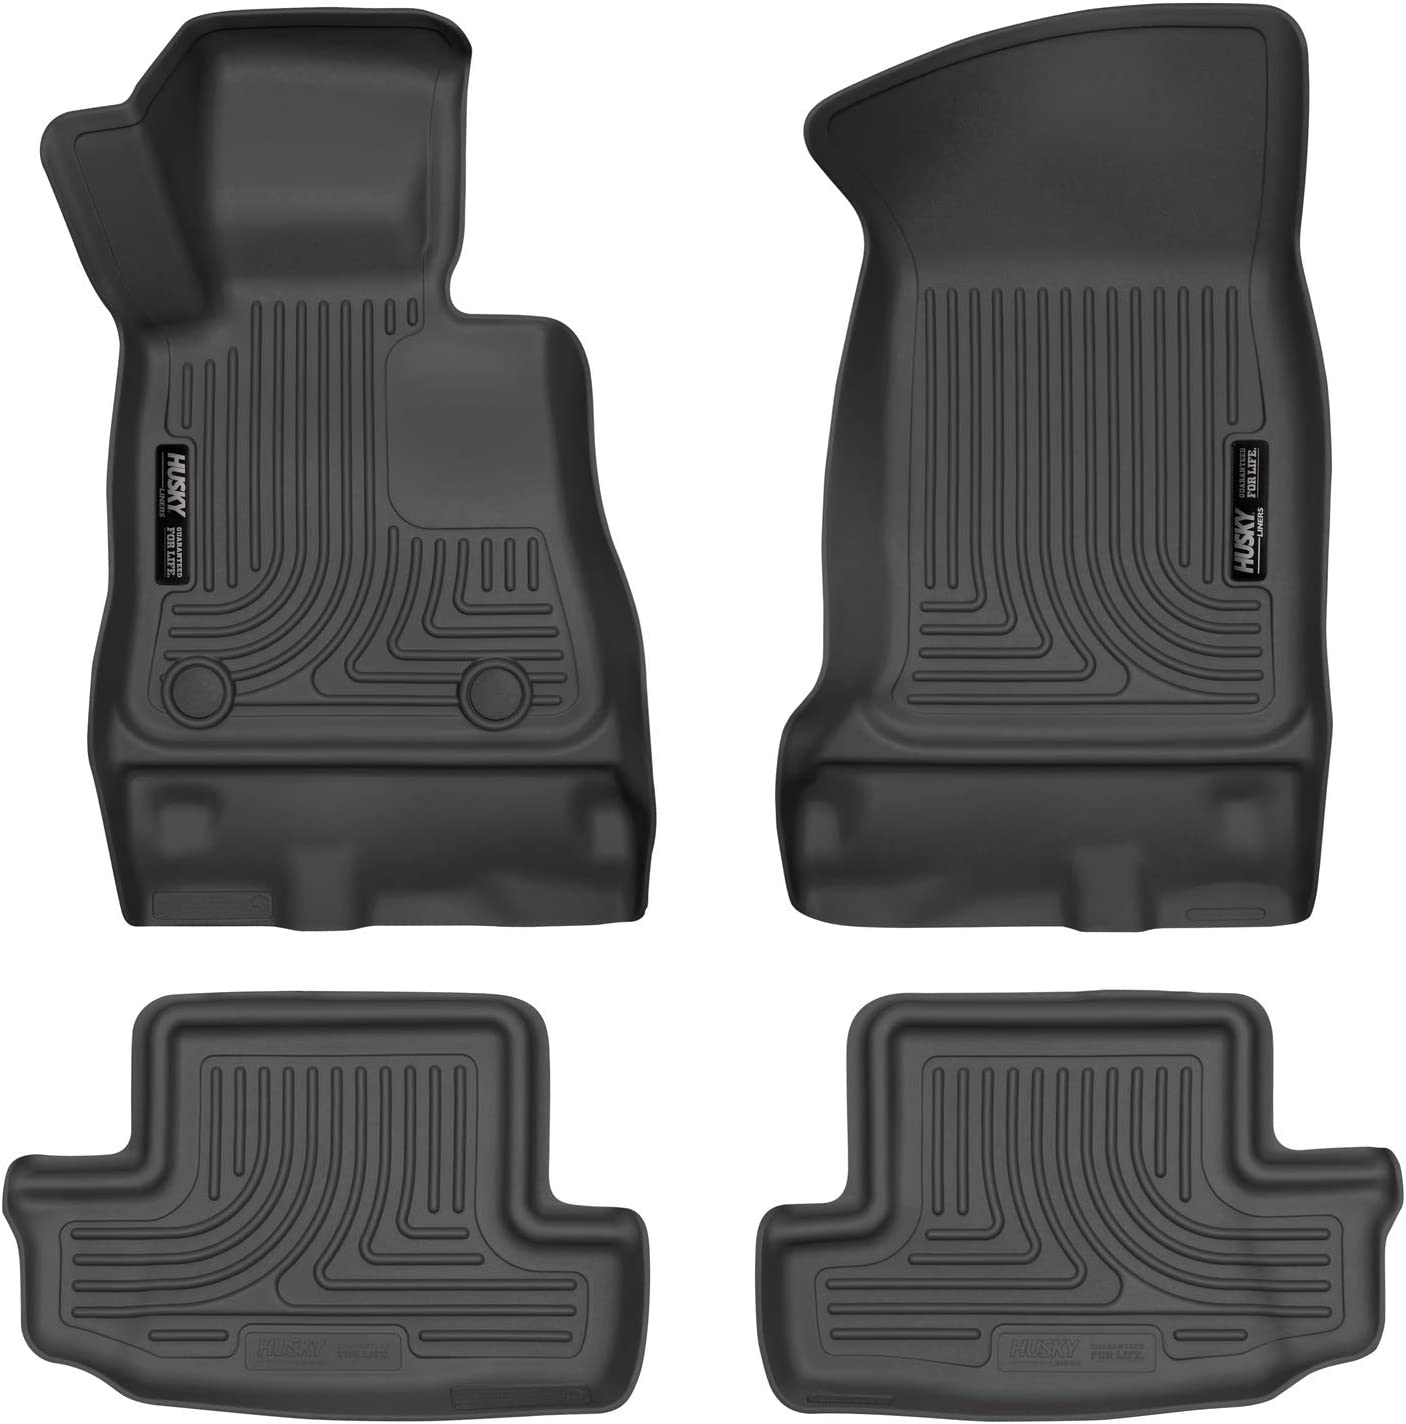 Unique Black TPE All-Weather Guard Includes 1st and 2nd Row: Front oEdRo Floor Mats Compatible for 2016-2019 Chevrolet Camaro Full Set Liners Rear